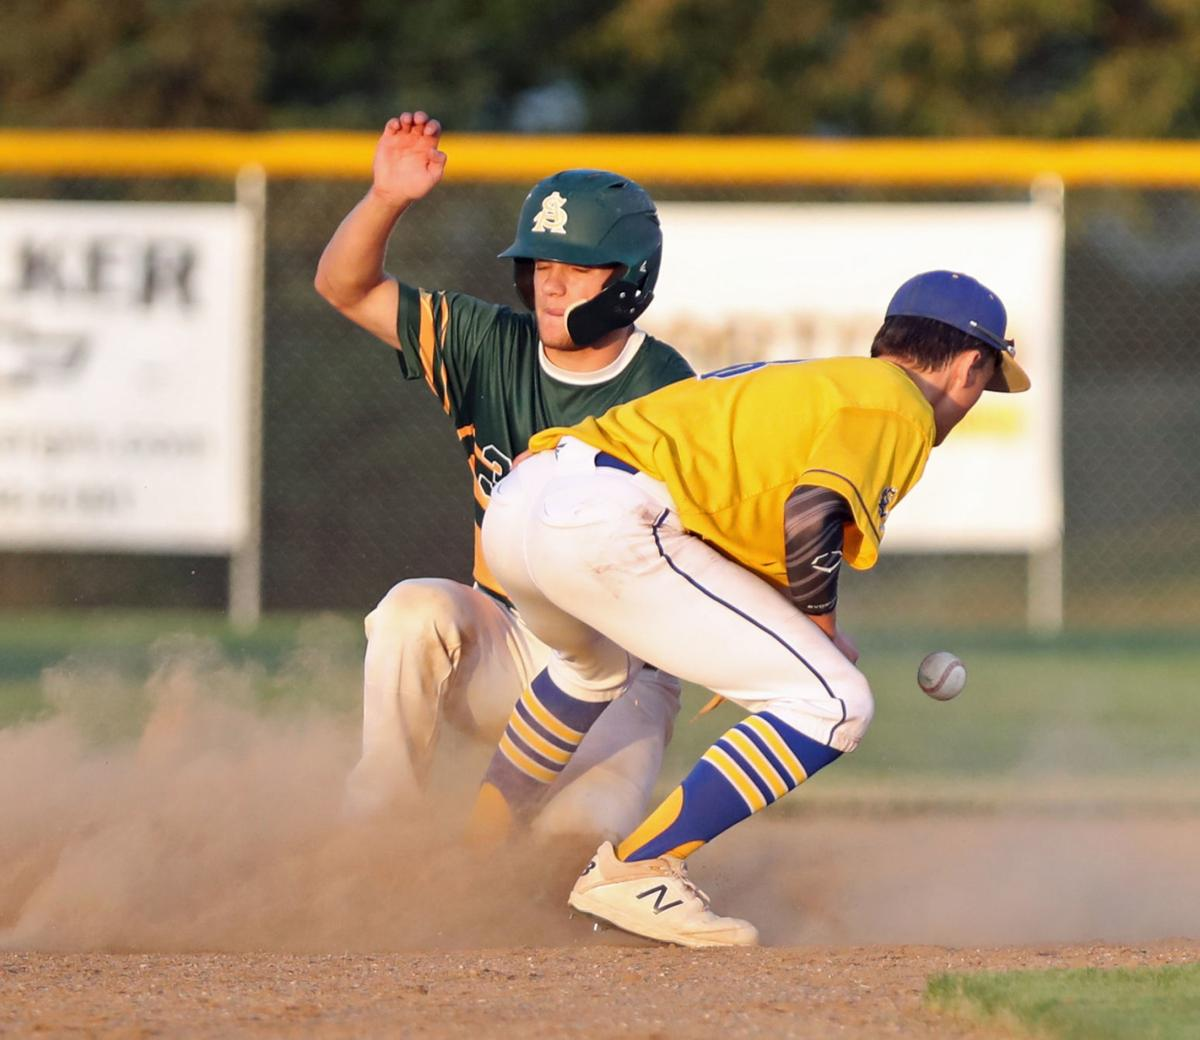 Council Bluffs St. Albert vs Martensdale-St. Marys, baseball